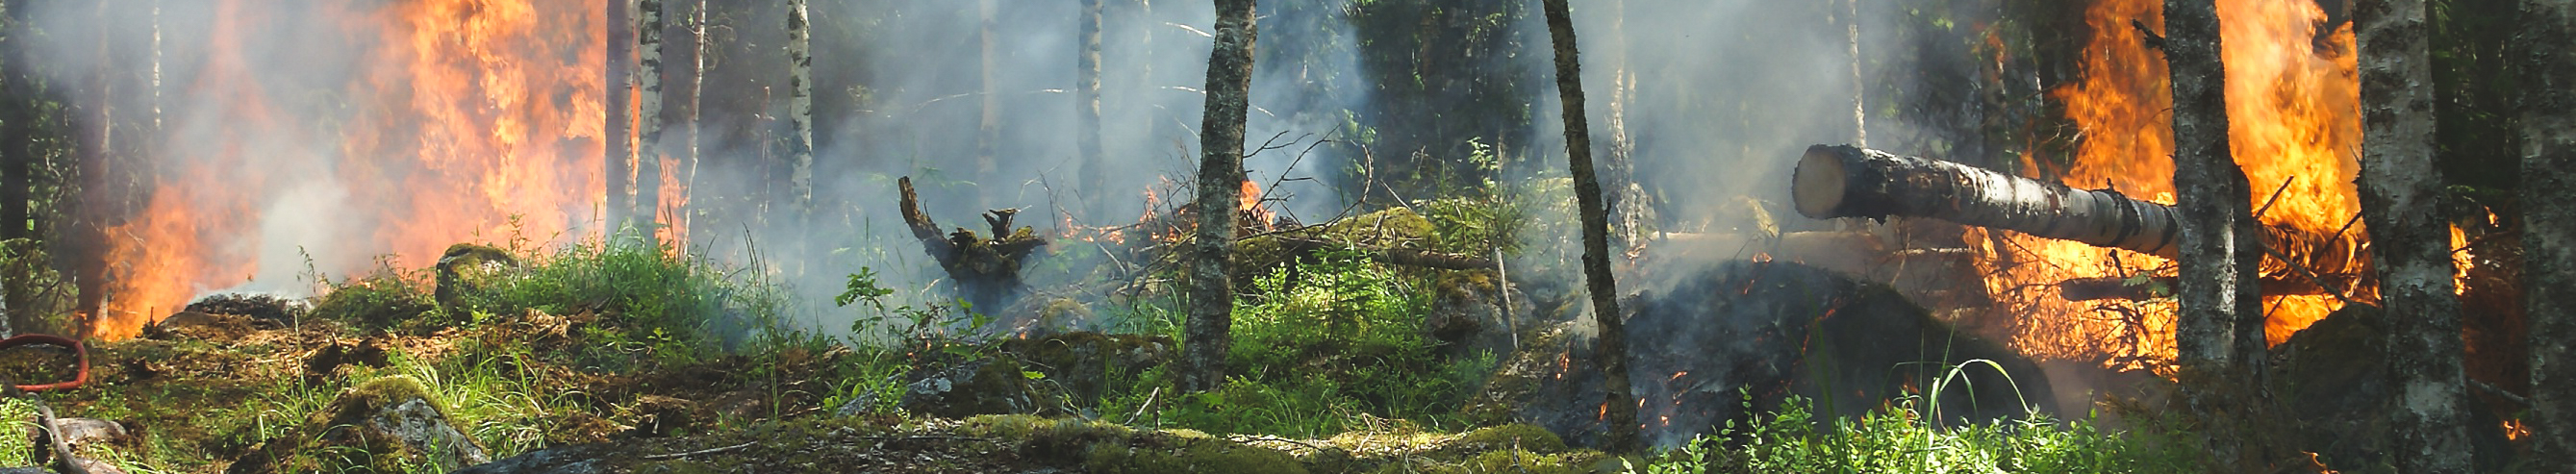 Small forest wildfire